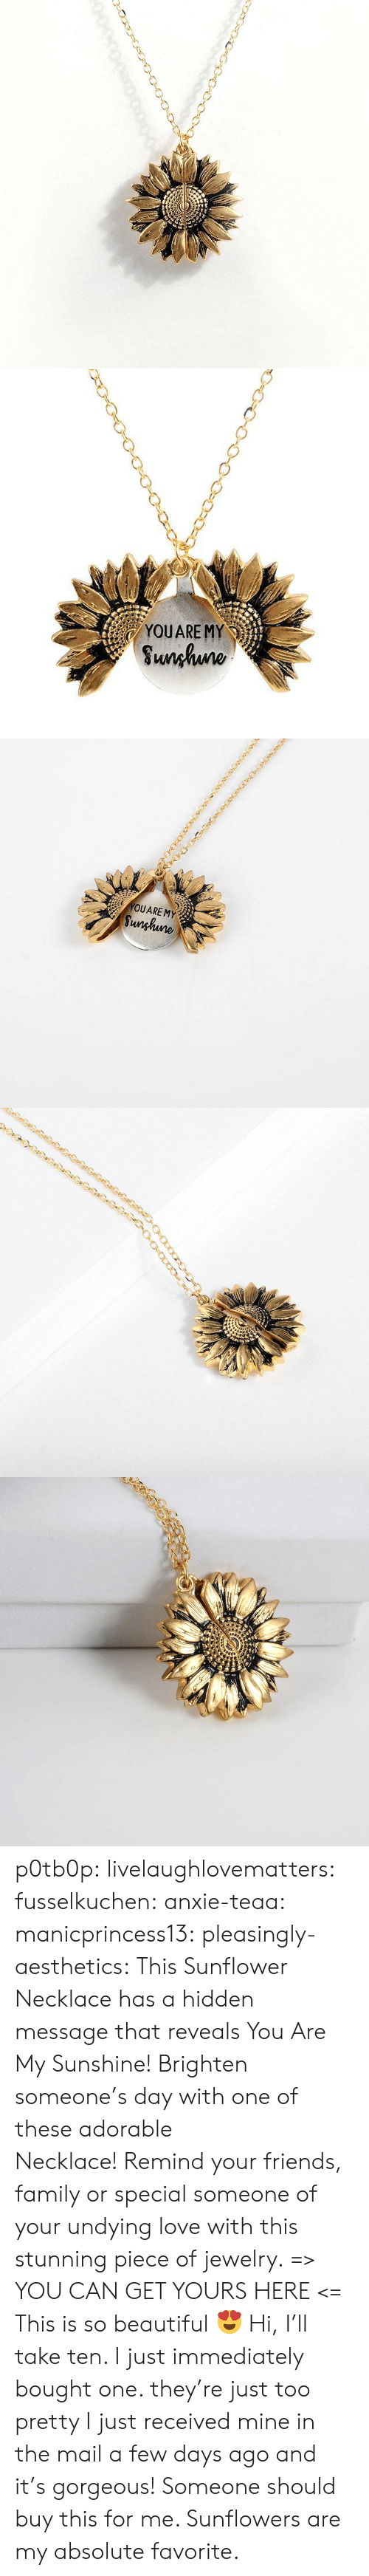 Sunflowers: YOUARE MY  Sunhuno   YOUARE MY  Sunghune p0tb0p:  livelaughlovematters: fusselkuchen:  anxie-teaa:   manicprincess13:   pleasingly-aesthetics:  This Sunflower Necklace has a hidden message that reveals You Are My Sunshine! Brighten someone's day with one of these adorable Necklace!Remind your friends, family or special someone of your undying love with this stunning piece of jewelry. => YOU CAN GET YOURS HERE <=   This is so beautiful 😍    Hi, I'll take ten.    I just immediately bought one. they're just too pretty   I just received mine in the mail a few days ago and it's gorgeous!   Someone should buy this for me. Sunflowers are my absolute favorite.